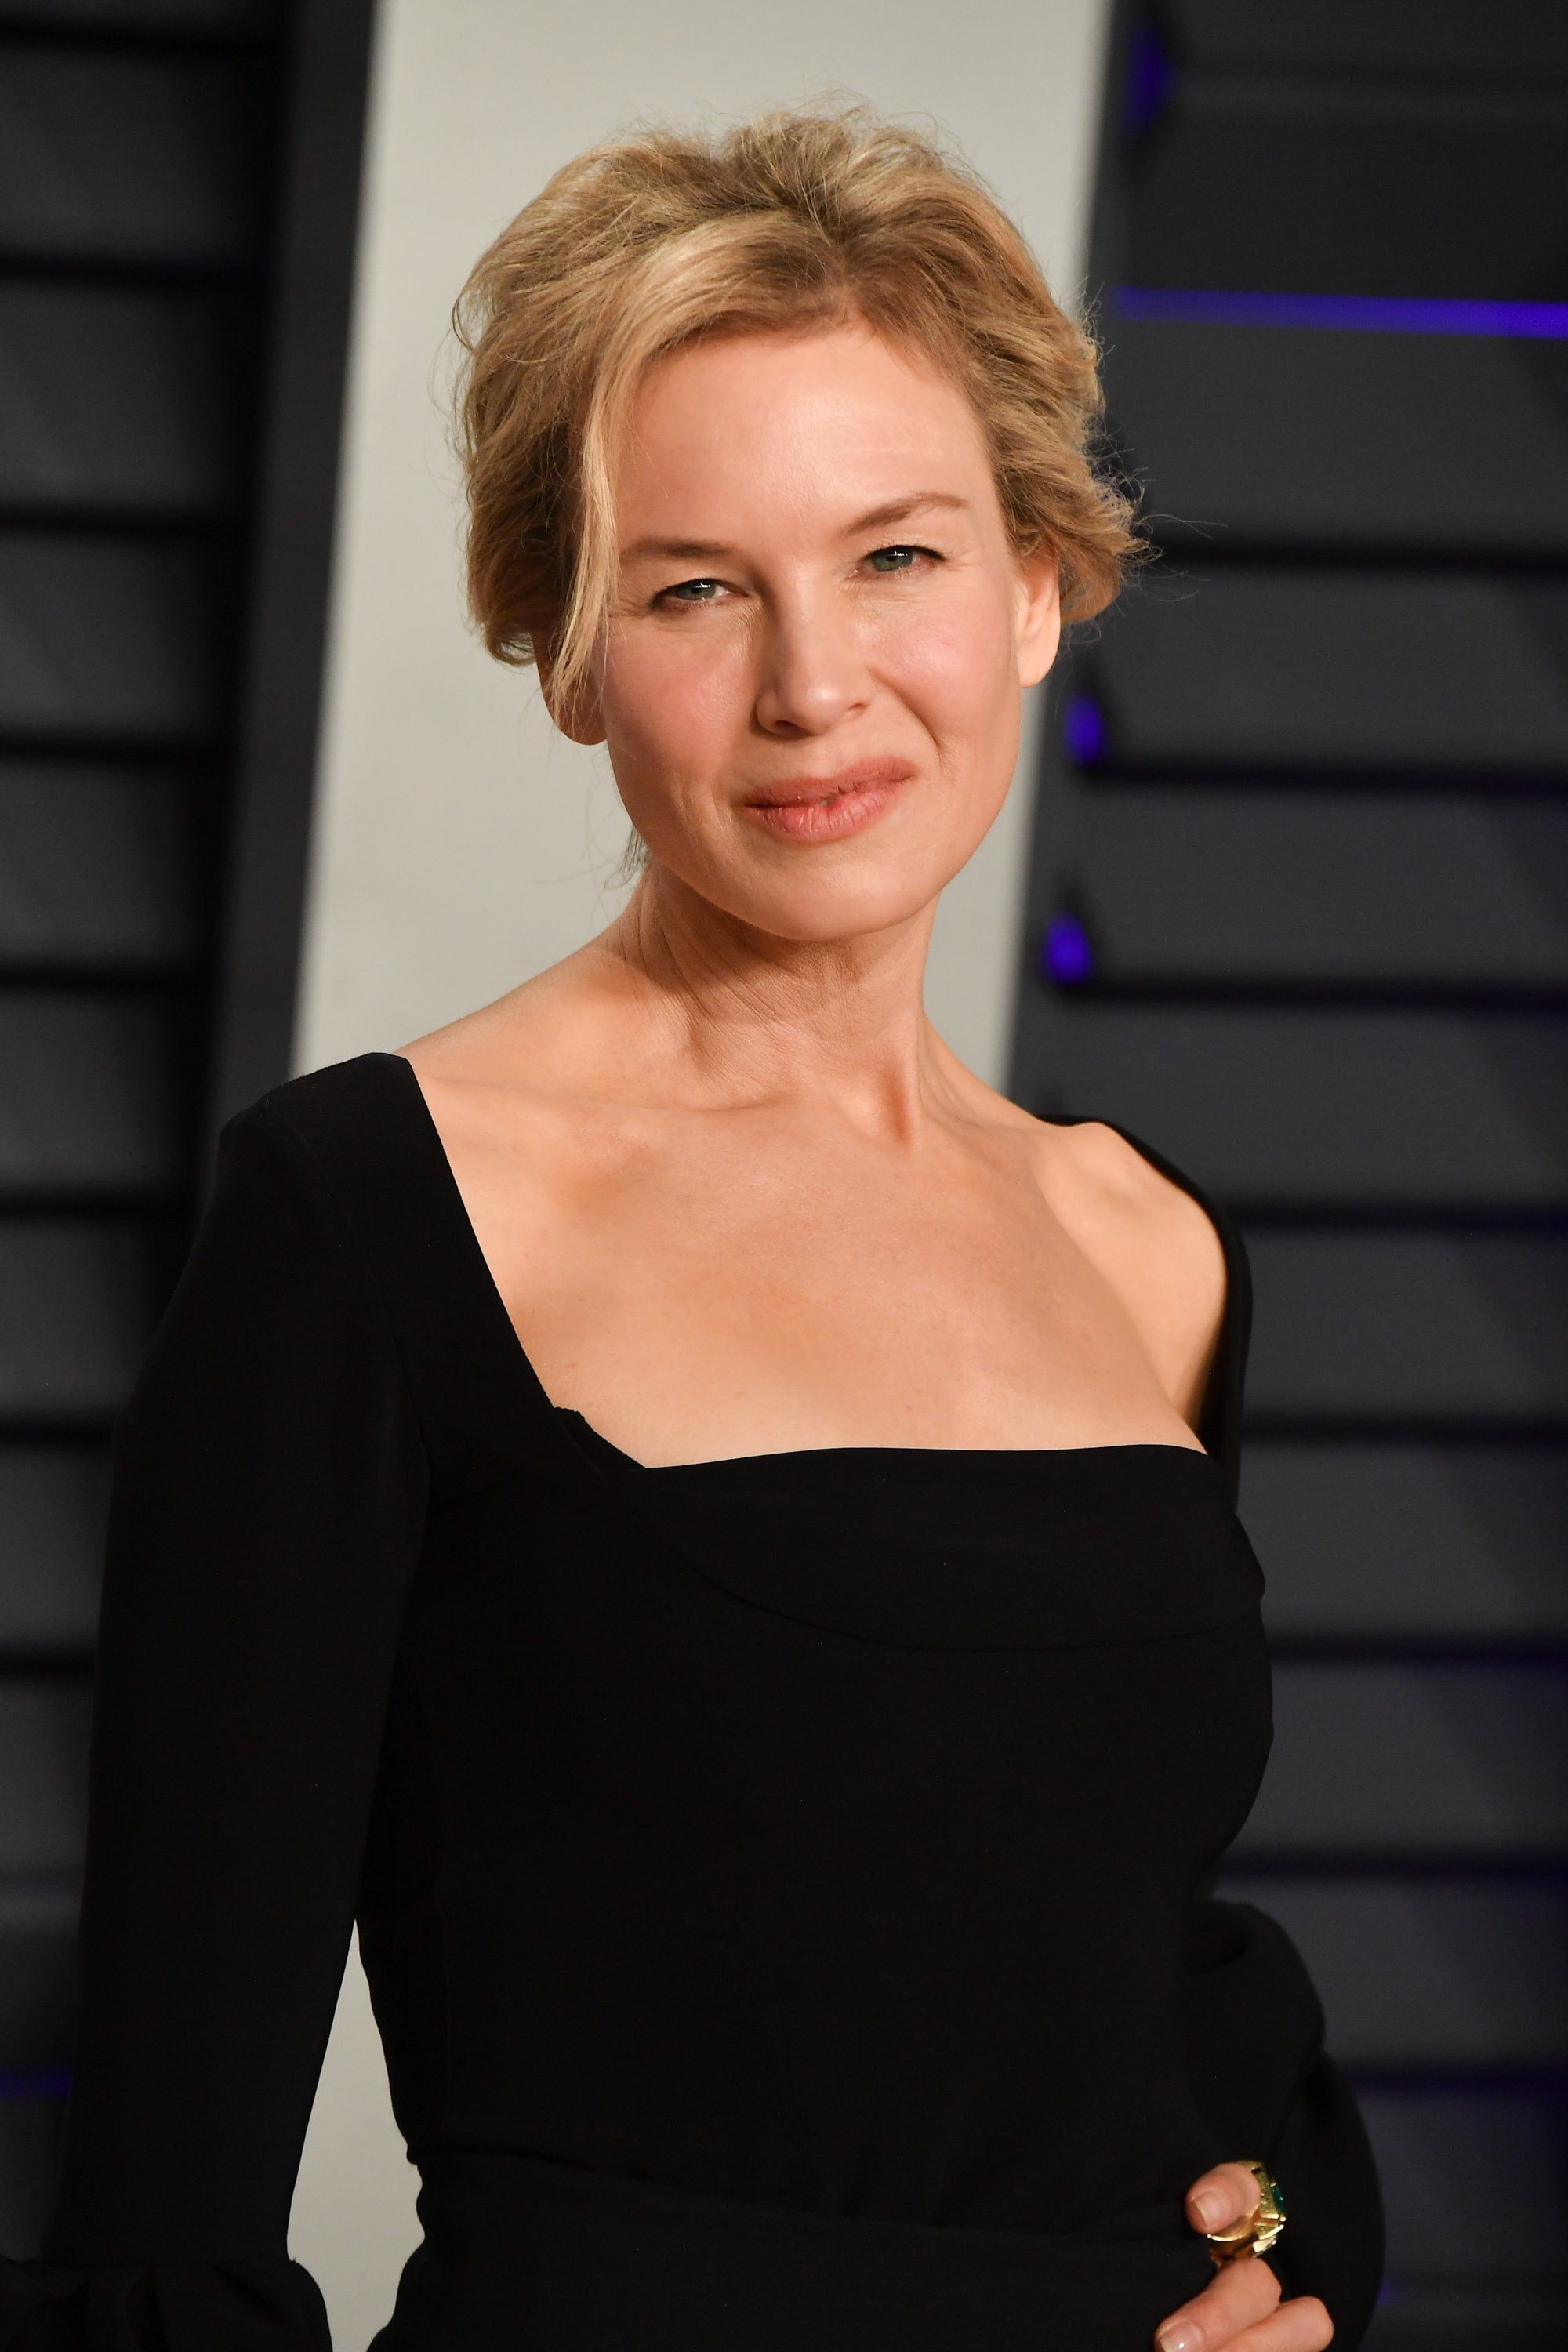 Renee Zellweger attends the 2019 Vanity Fair Oscar Party hosted by Radhika Jones at Wallis Annenberg Center for the Performing Arts on February 24, 2019, in Beverly Hills, California. | Source: Getty Images.